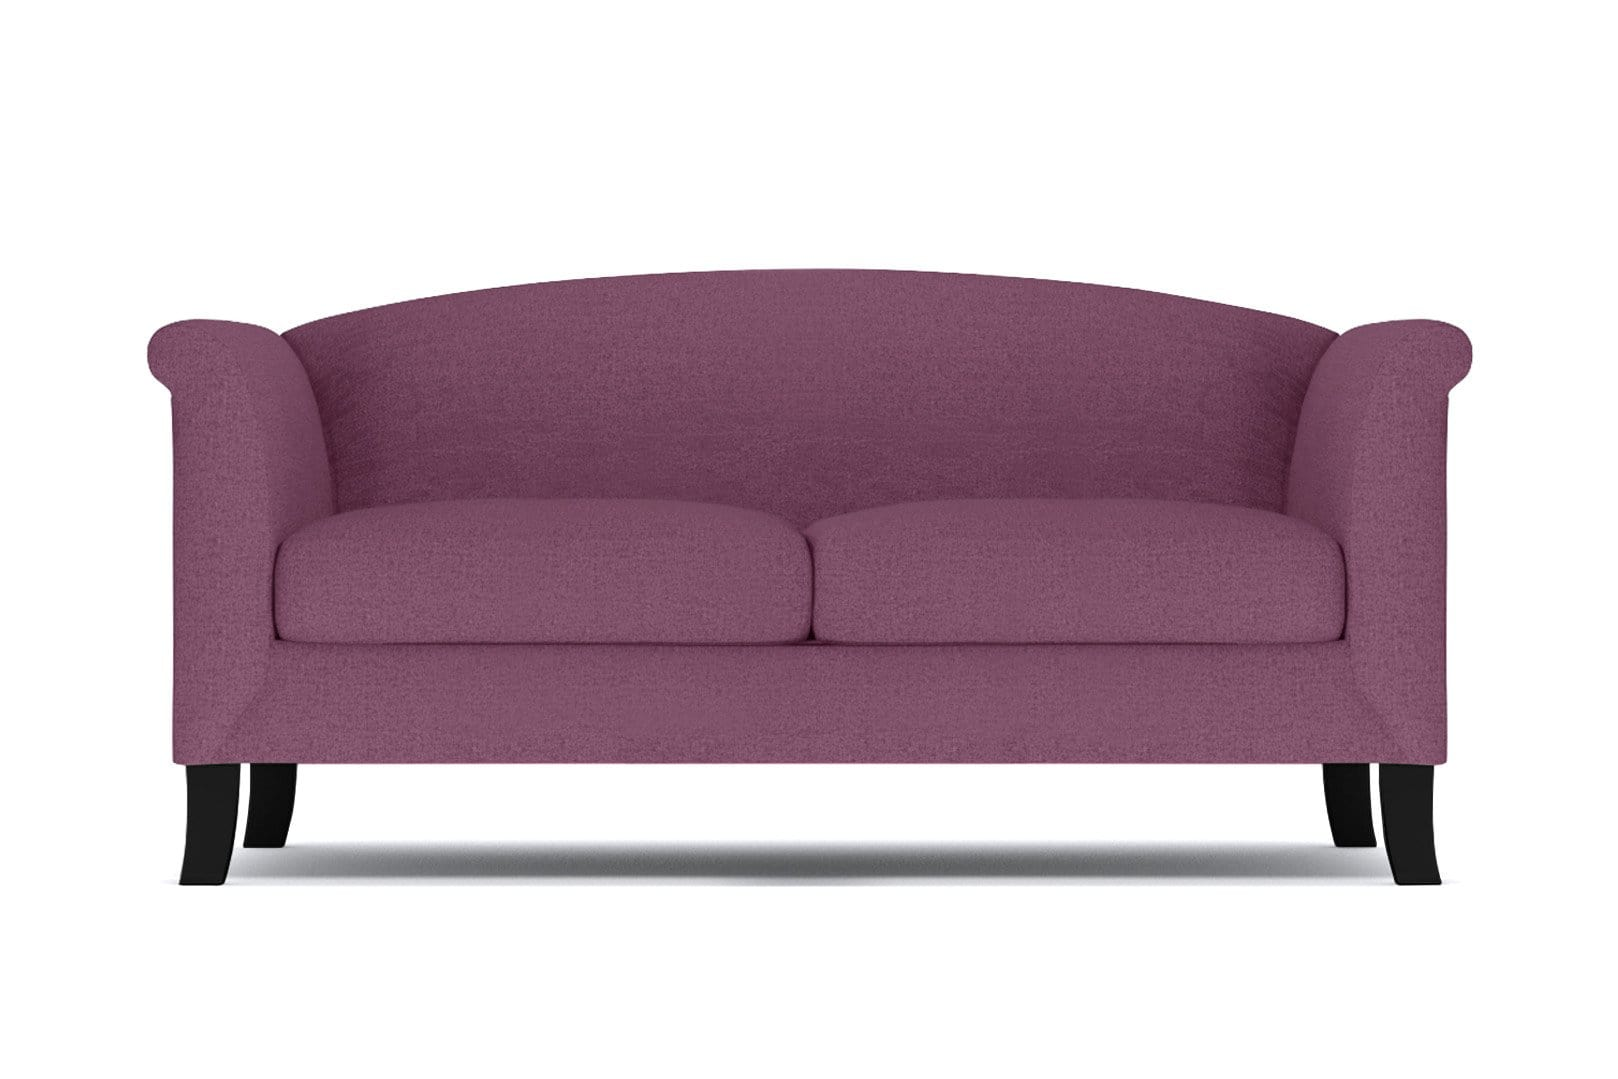 Albright_Apartment_Size_Sofa__Purple___Small_Space_Modern_Couch_Made_in_the_USA__Sold_by_Apt2B